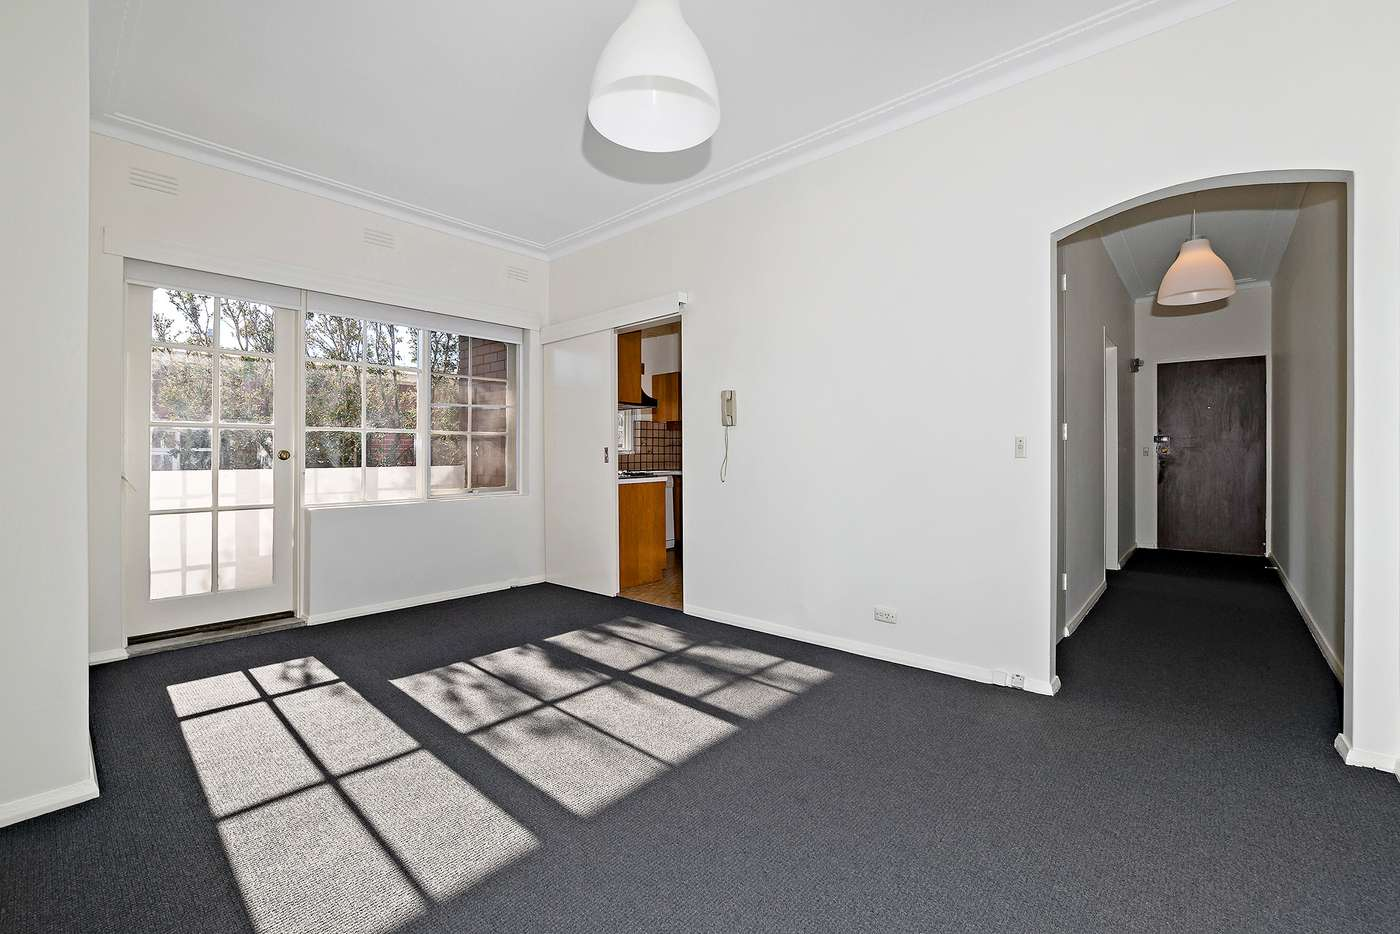 Fifth view of Homely apartment listing, 5/34 Edgar Street, Glen Iris VIC 3146